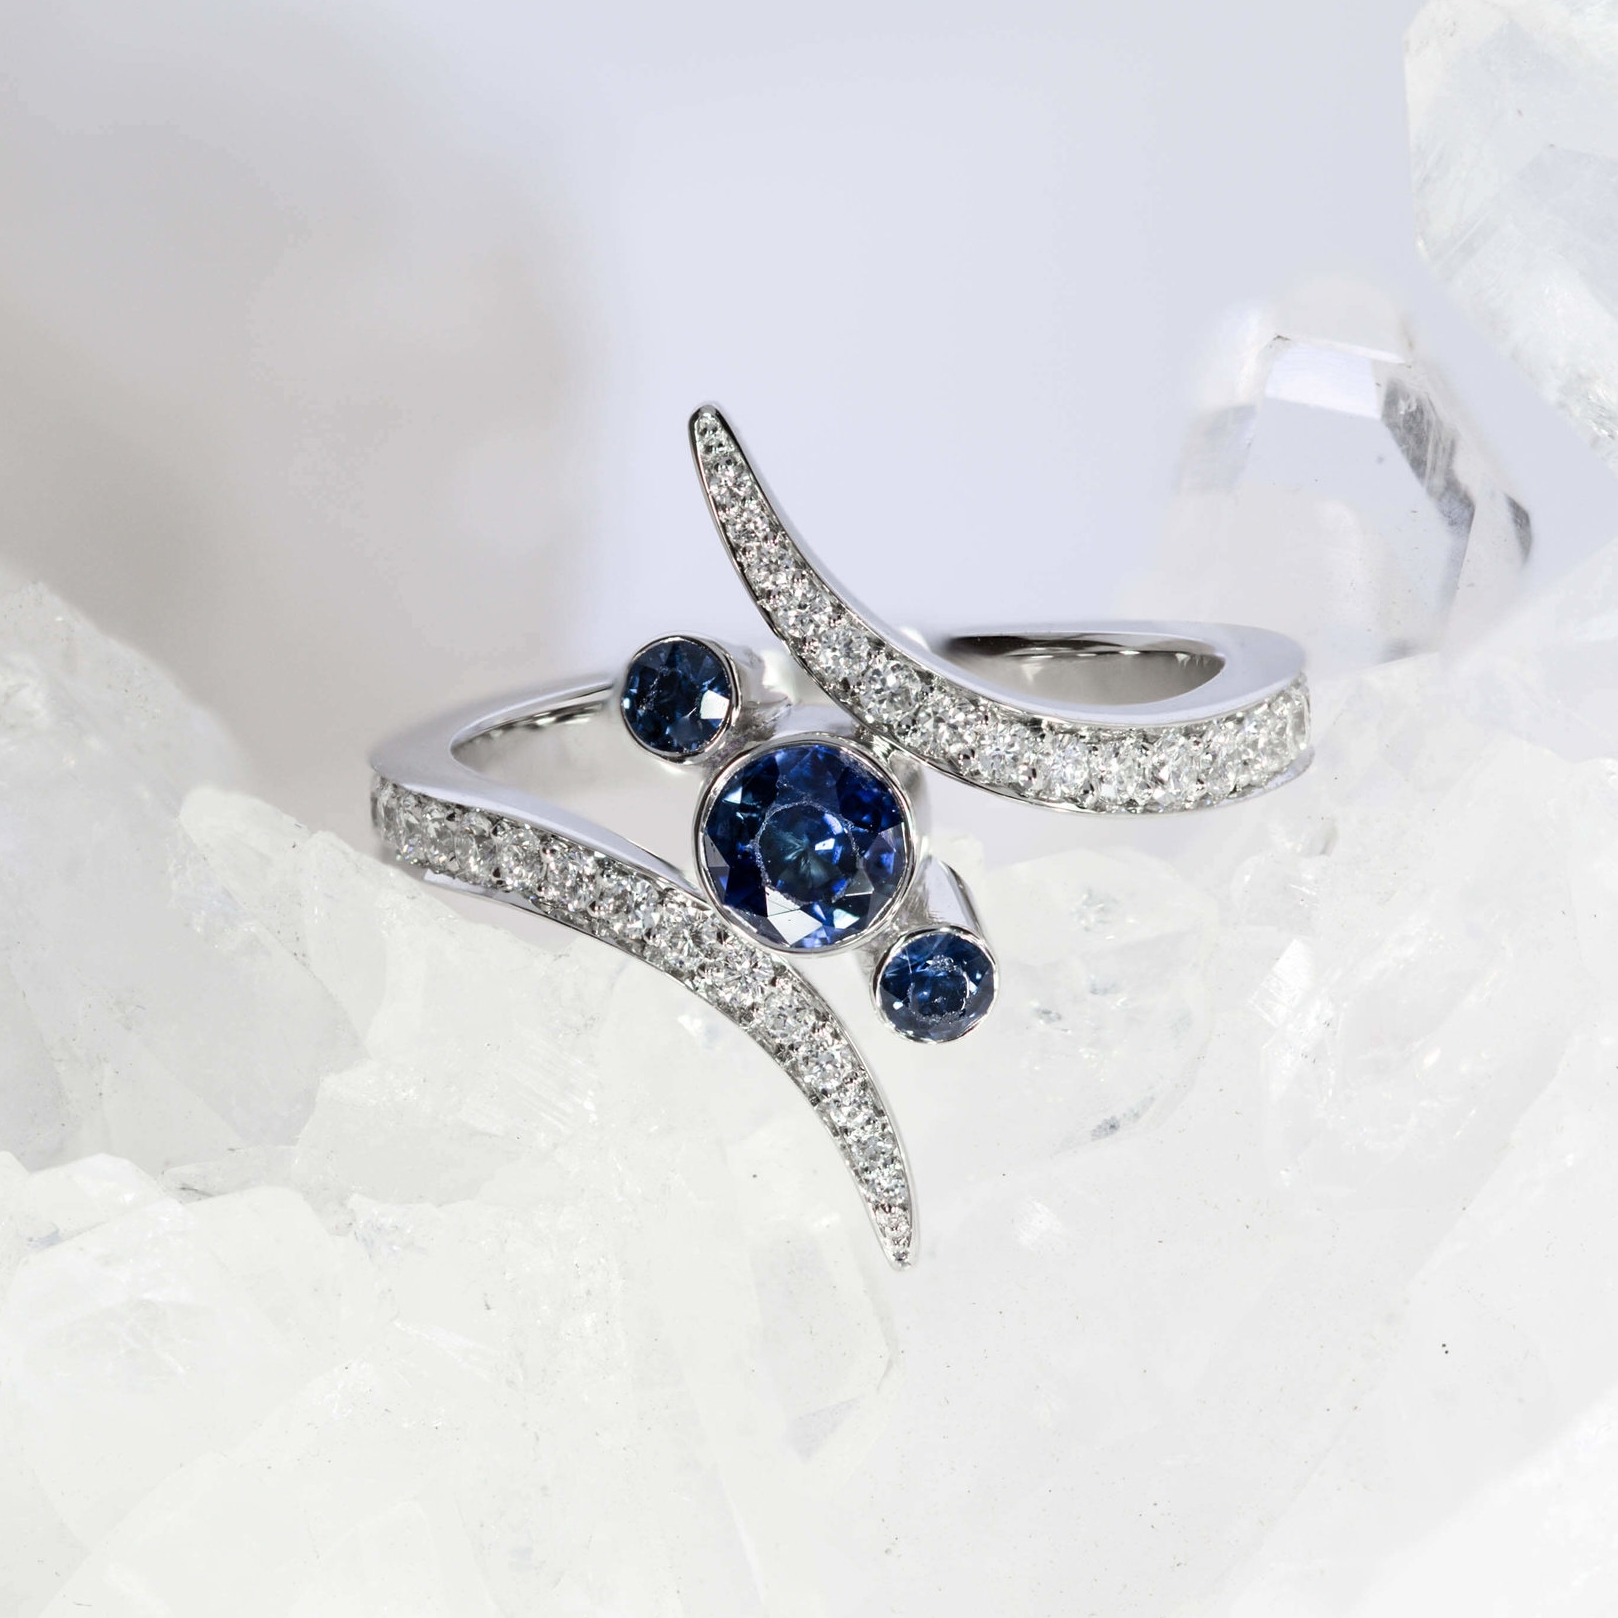 Not all heirlooms are suitable for resetting, but this stunning trio of sapphires was given the go-ahead by our gemmologists